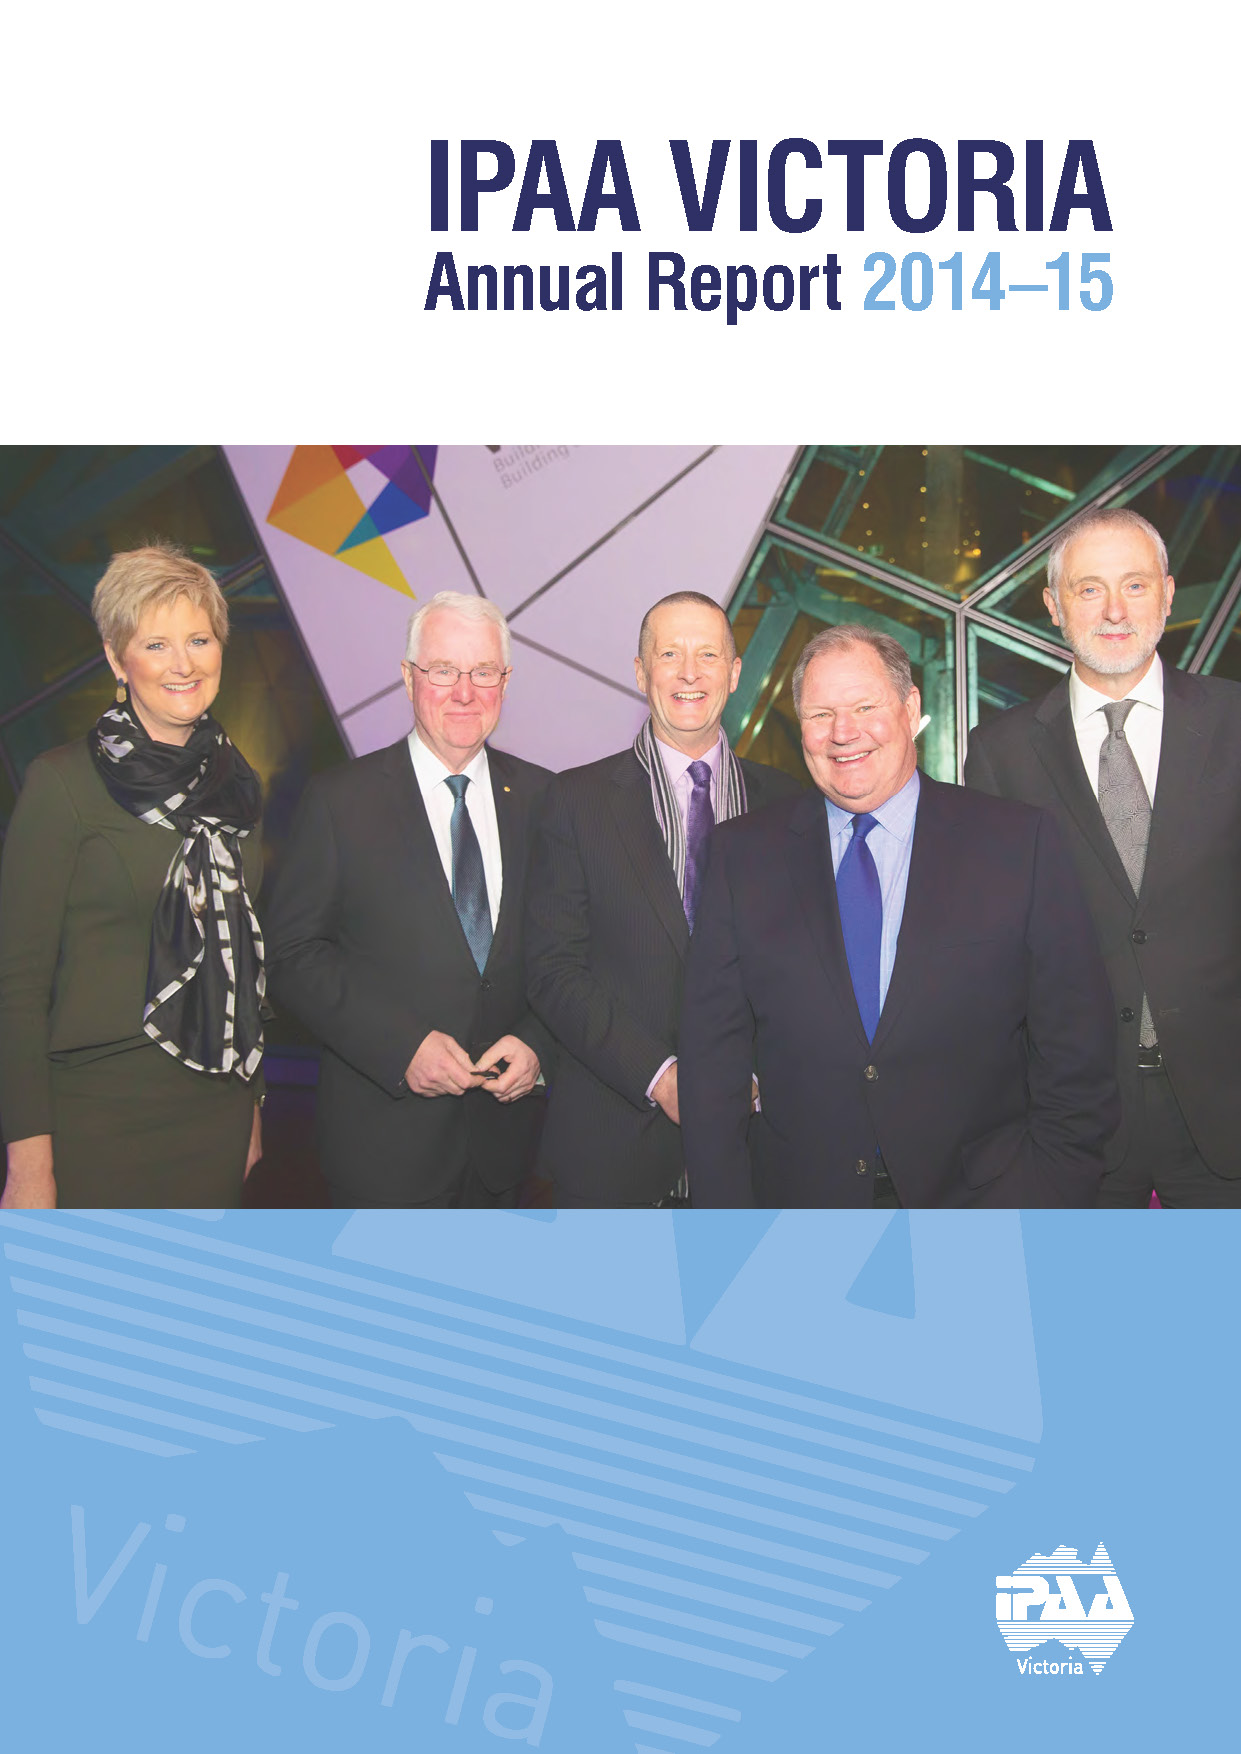 2014 - 2015 IPAA Victoria Annual Report_Page_01.jpg